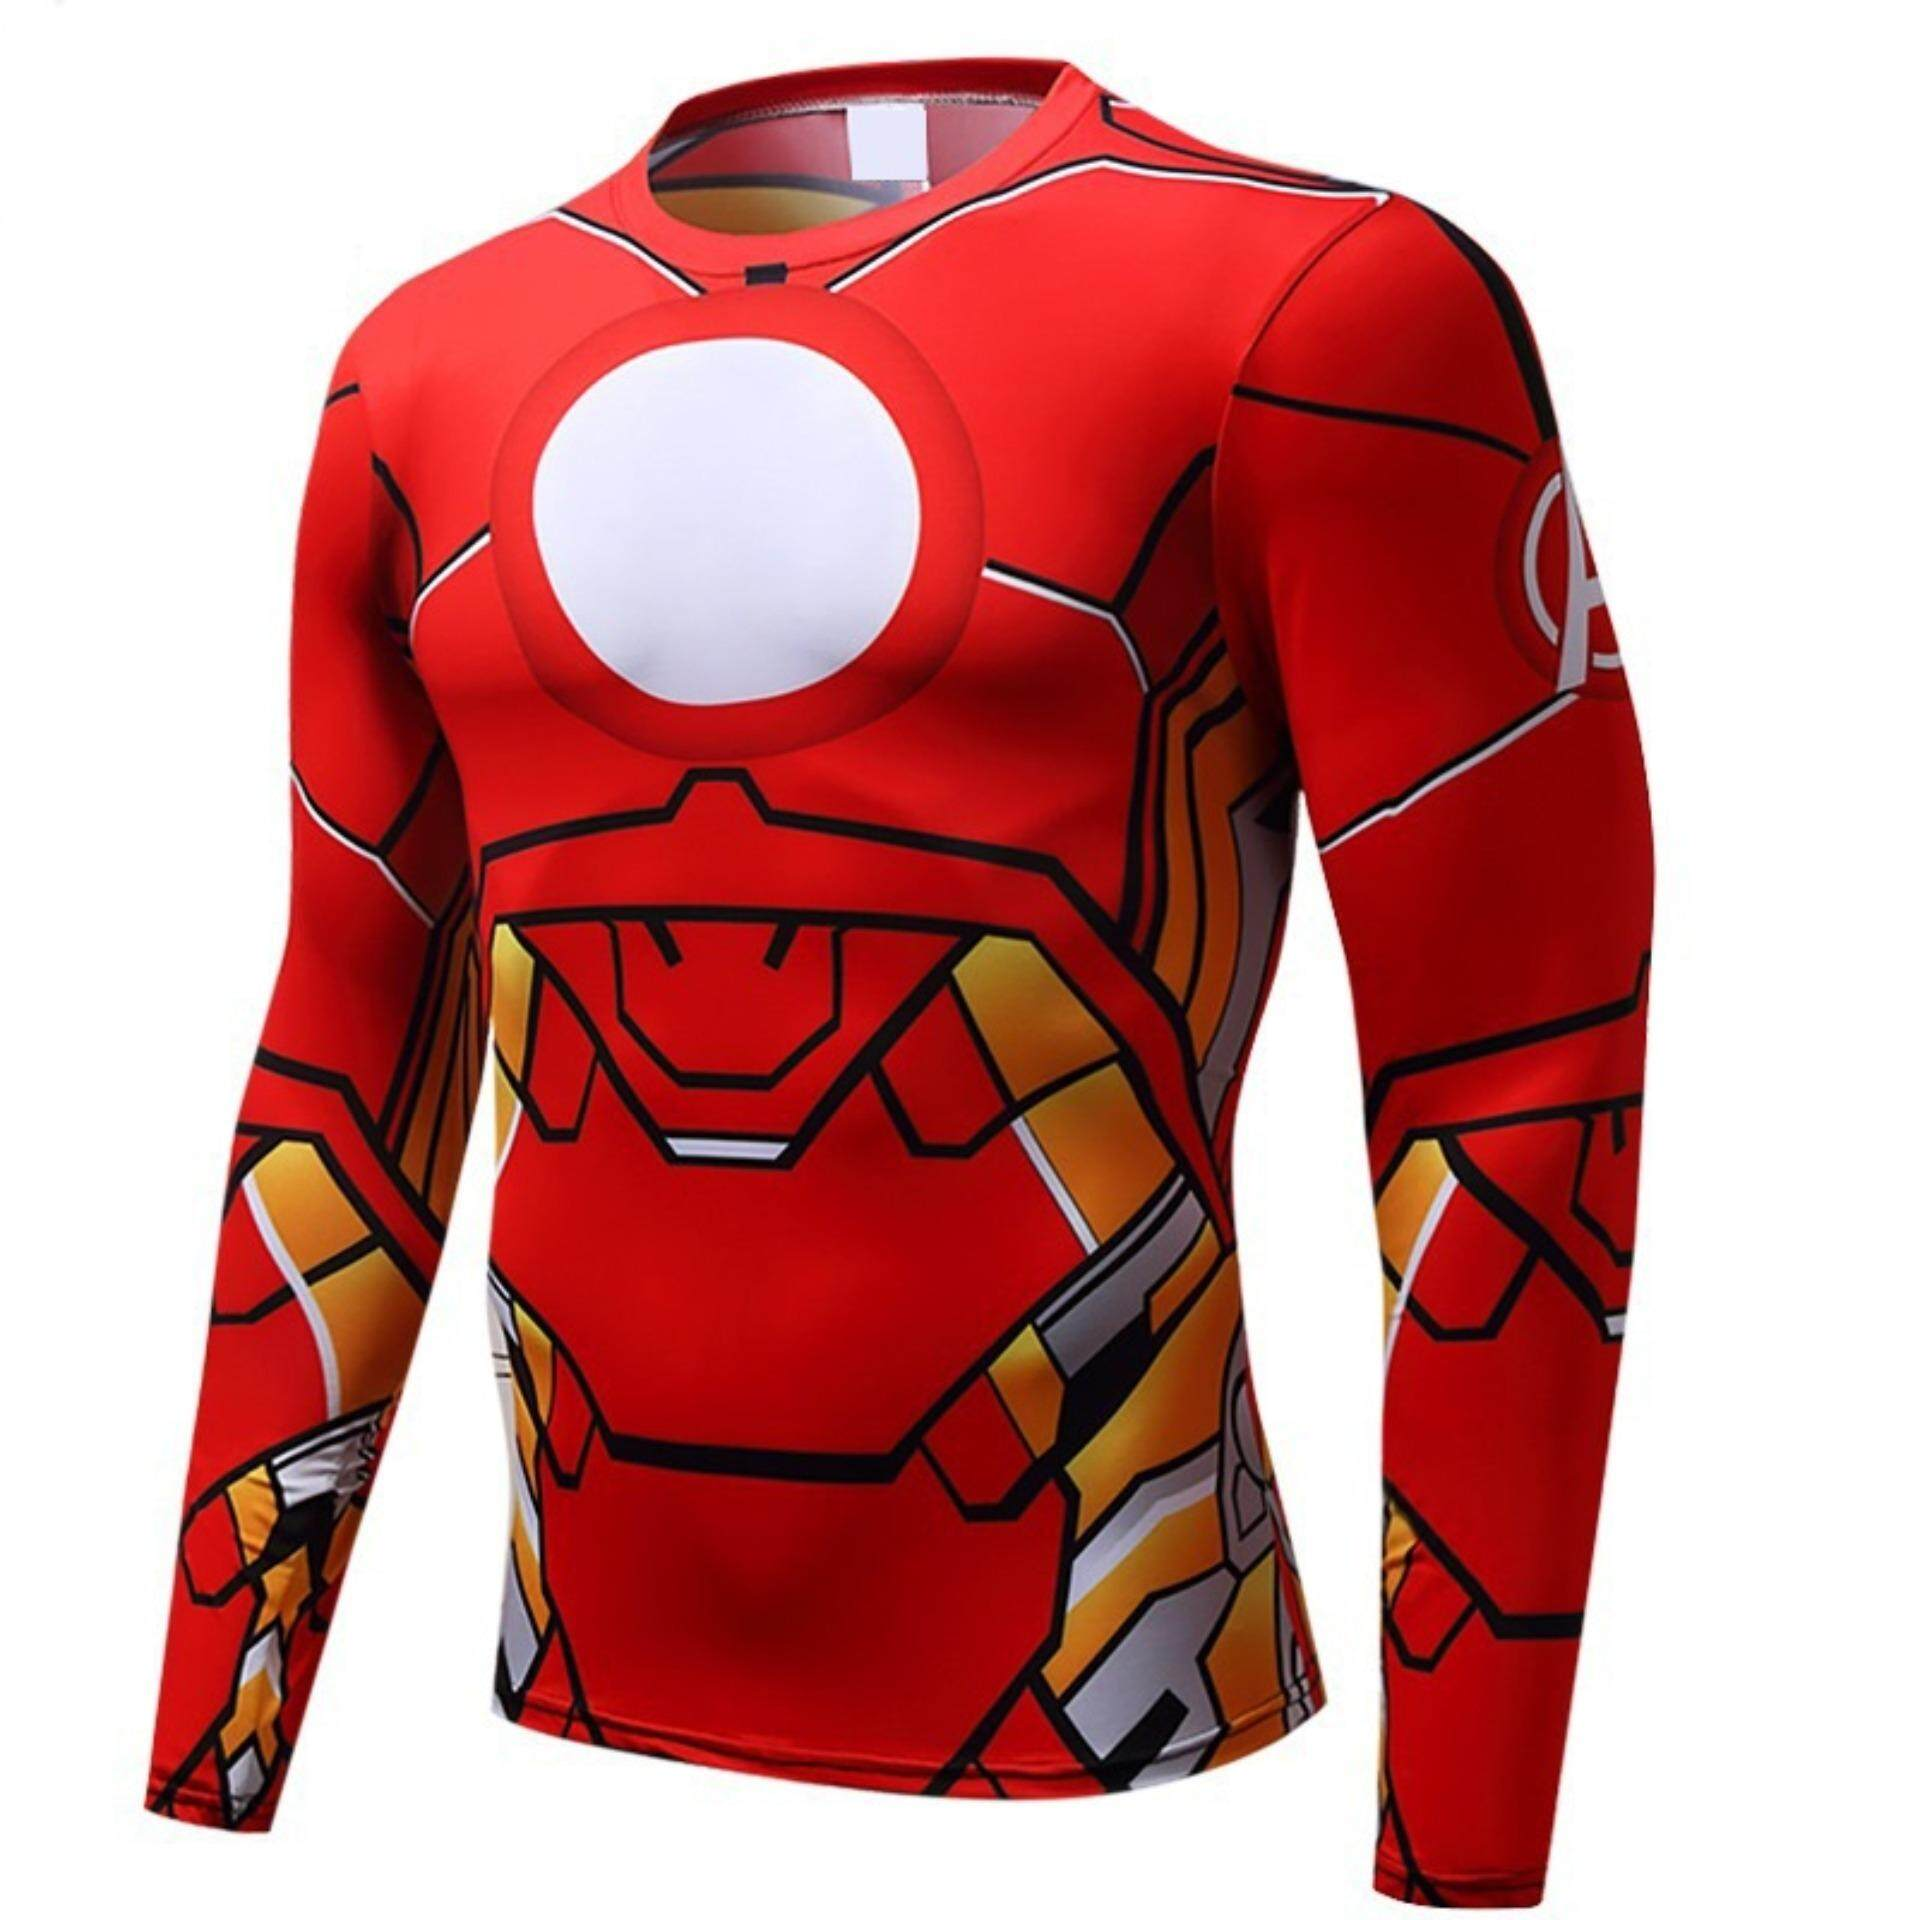 Iron Man Avengers Long Sleeve O-neck Unisex Hero Outdoor Sports T Shirts - intl